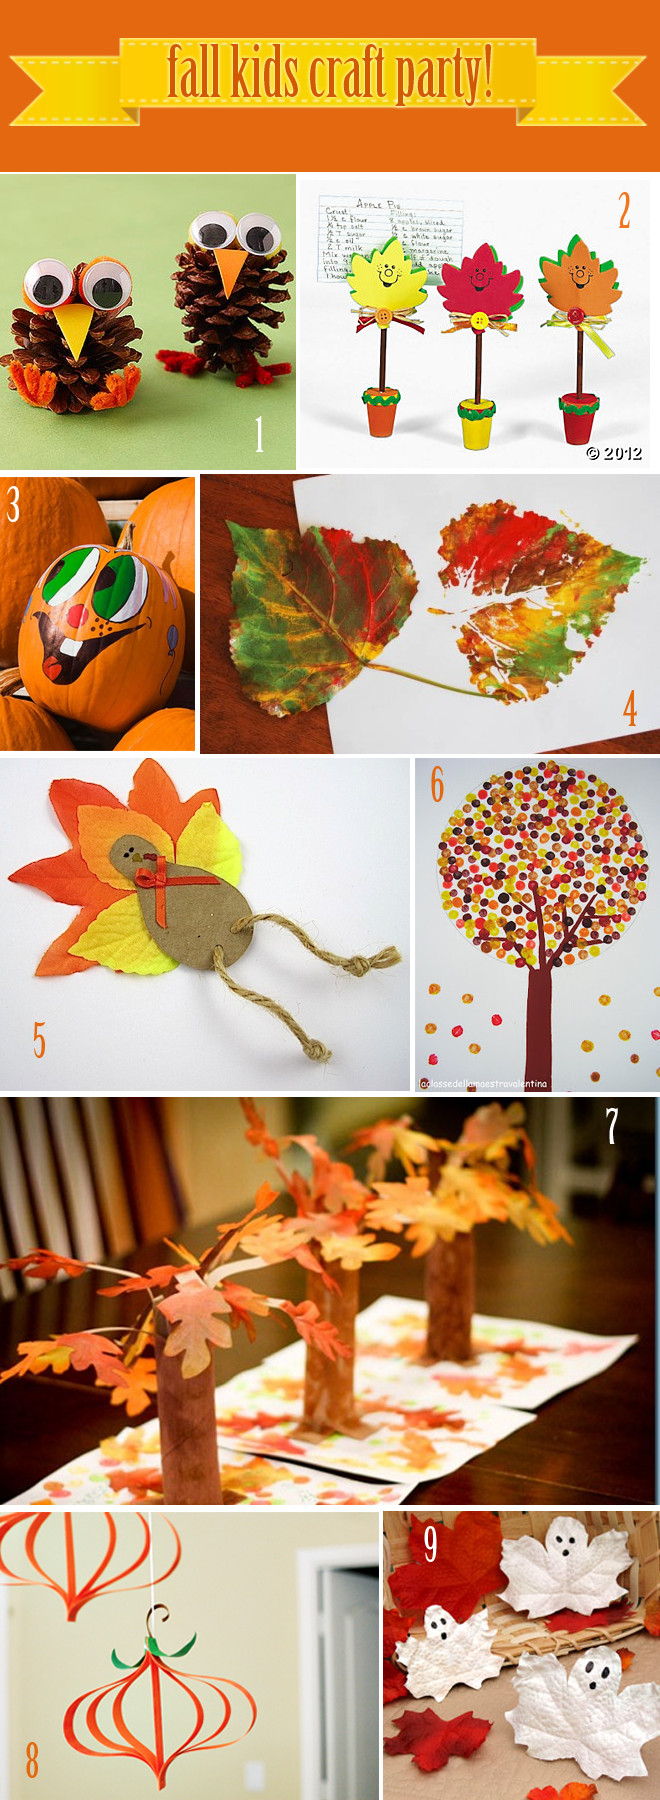 Fall Crafts Ideas For Kids  9 Fall Craft Ideas For Kids